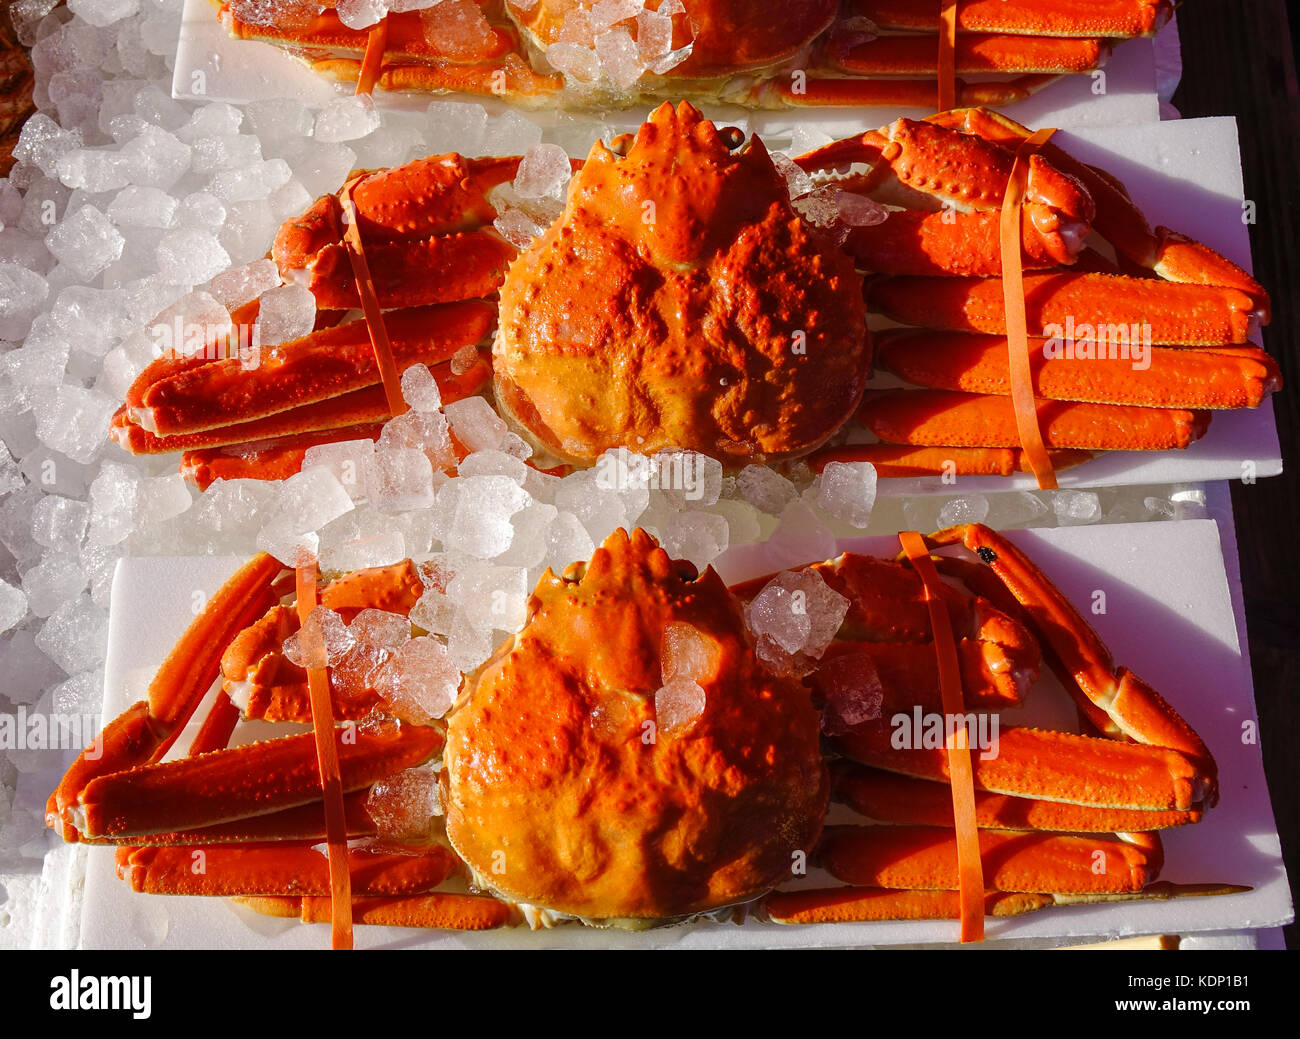 Crabs with ice for sale at Asaichi Market. Hakodate Asaichi (Morning Market) boasts approximately 250 stores offering - Stock Image